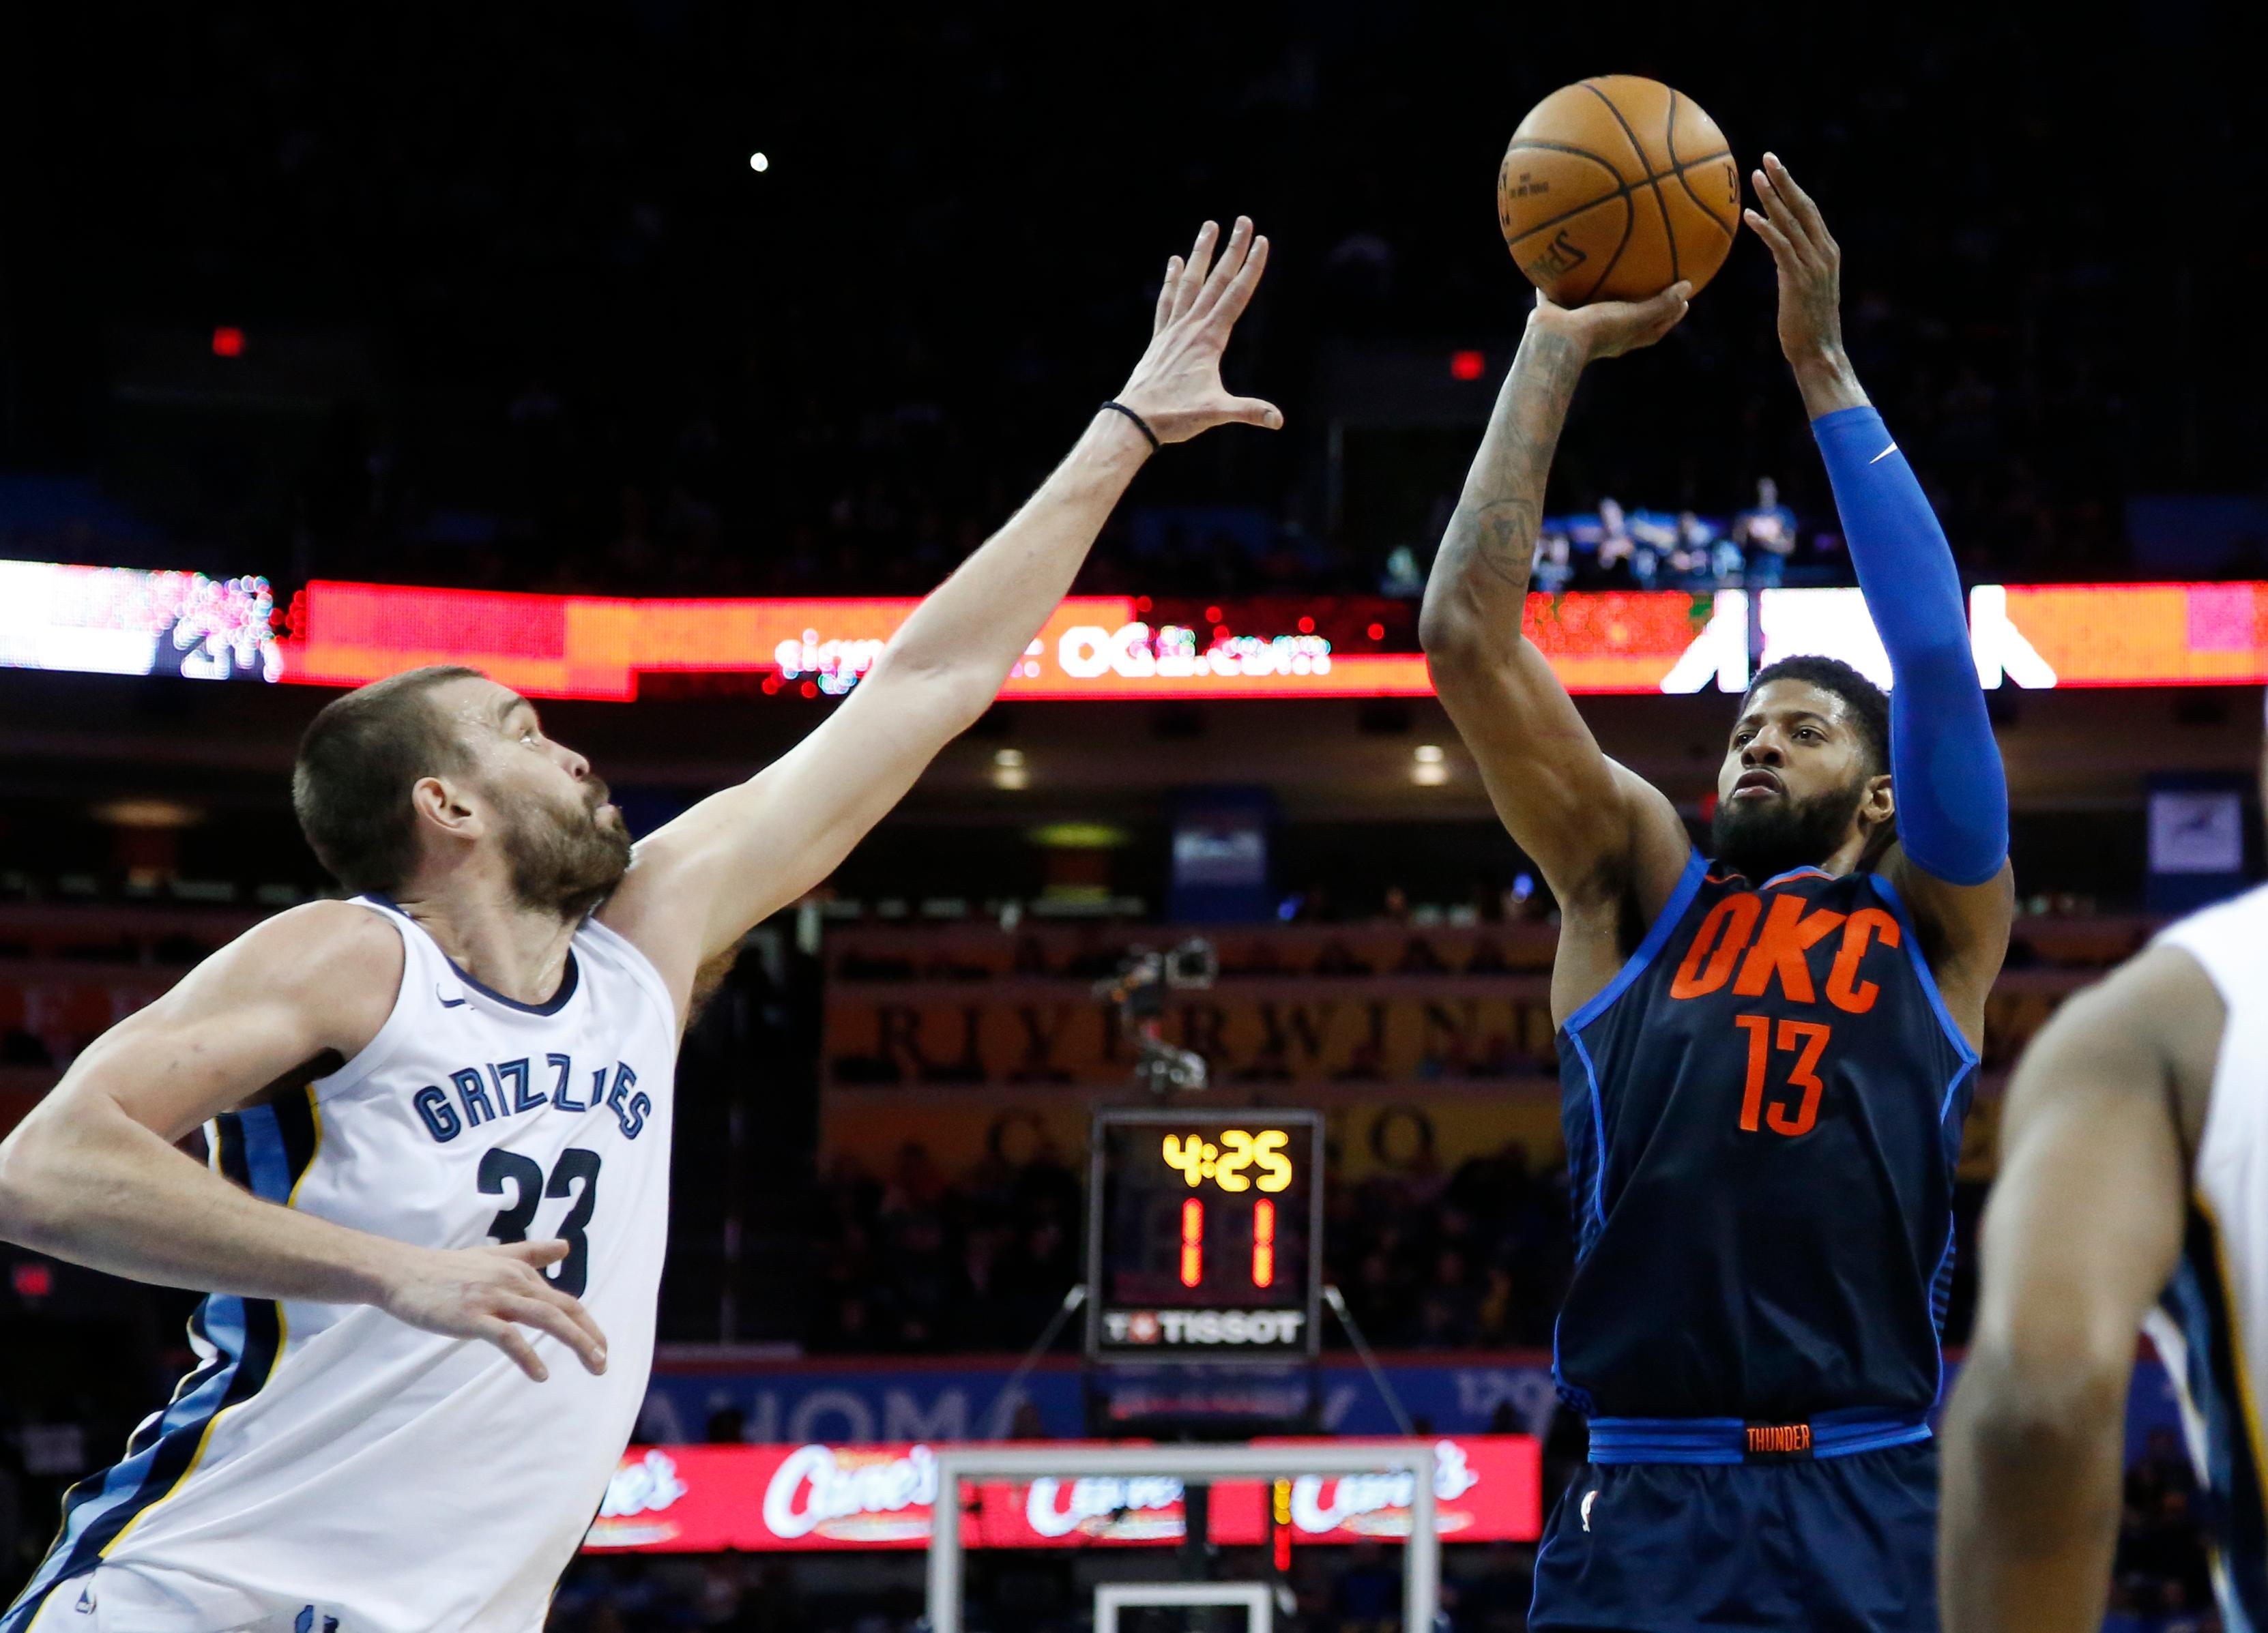 Oklahoma City Thunder forward Paul George (13) shoots over Memphis Grizzlies center Marc Gasol (33) in the second half of an NBA basketball game in Oklahoma City, Sunday, Feb. 11, 2018. (AP Photo/Sue Ogrocki)